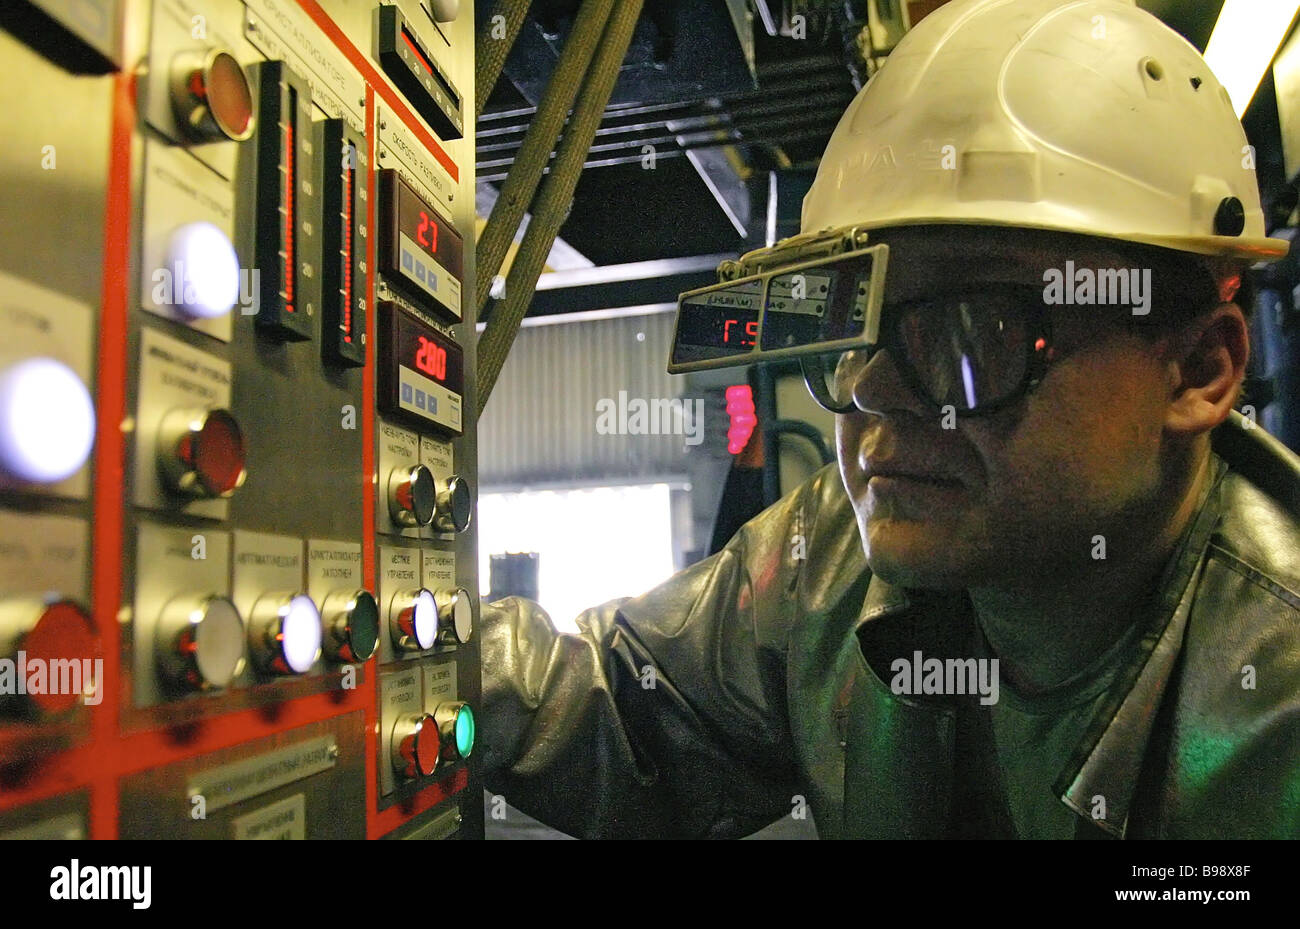 Open hearth furnace controls at the Taganrog iron and steel works - Stock Image